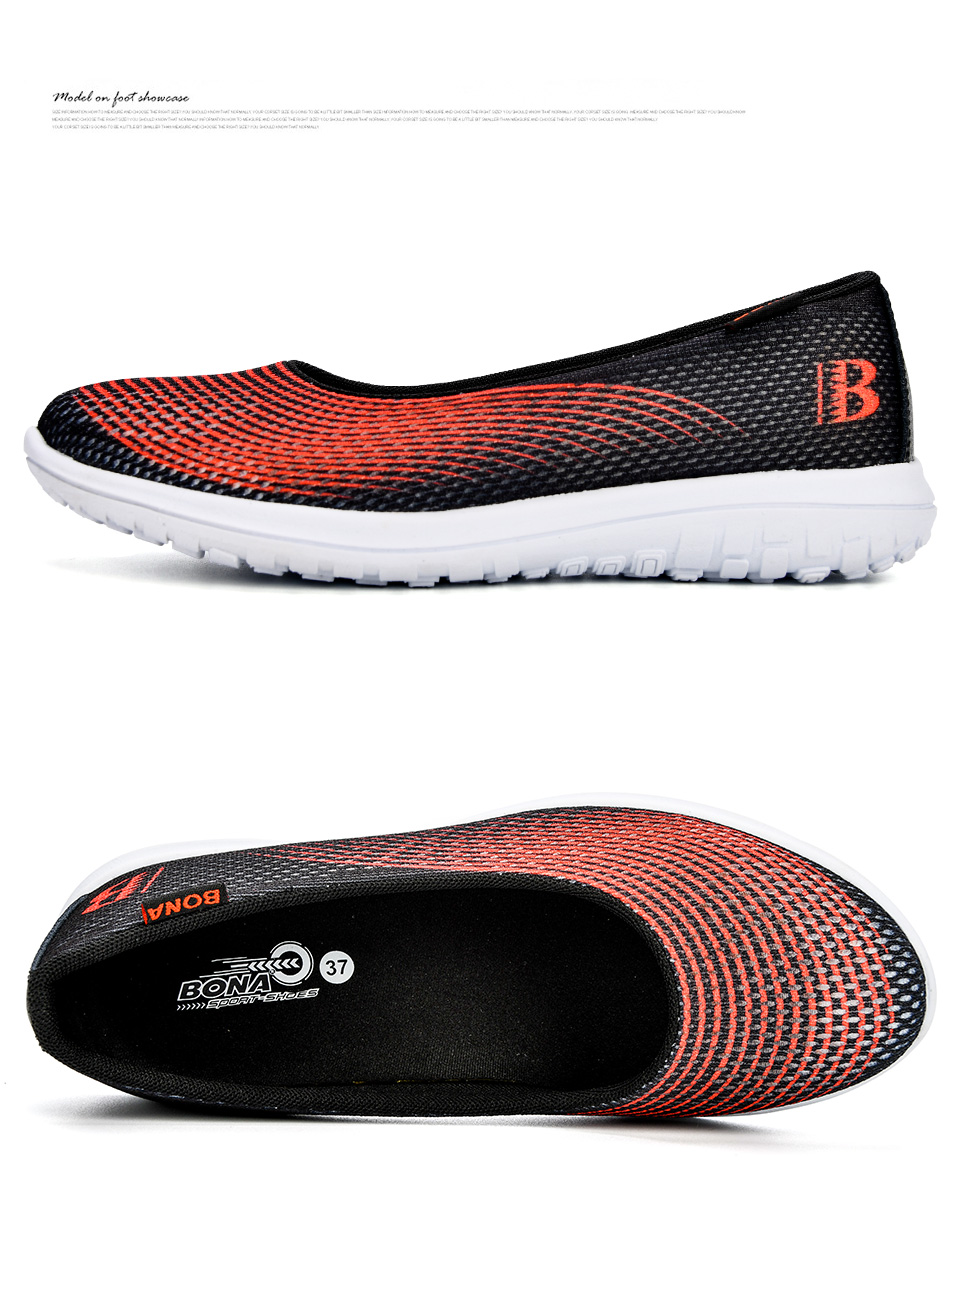 Women Sport Flats Fashion Shoes HTB1vmlyncj B1NjSZFHq6yDWpXa4